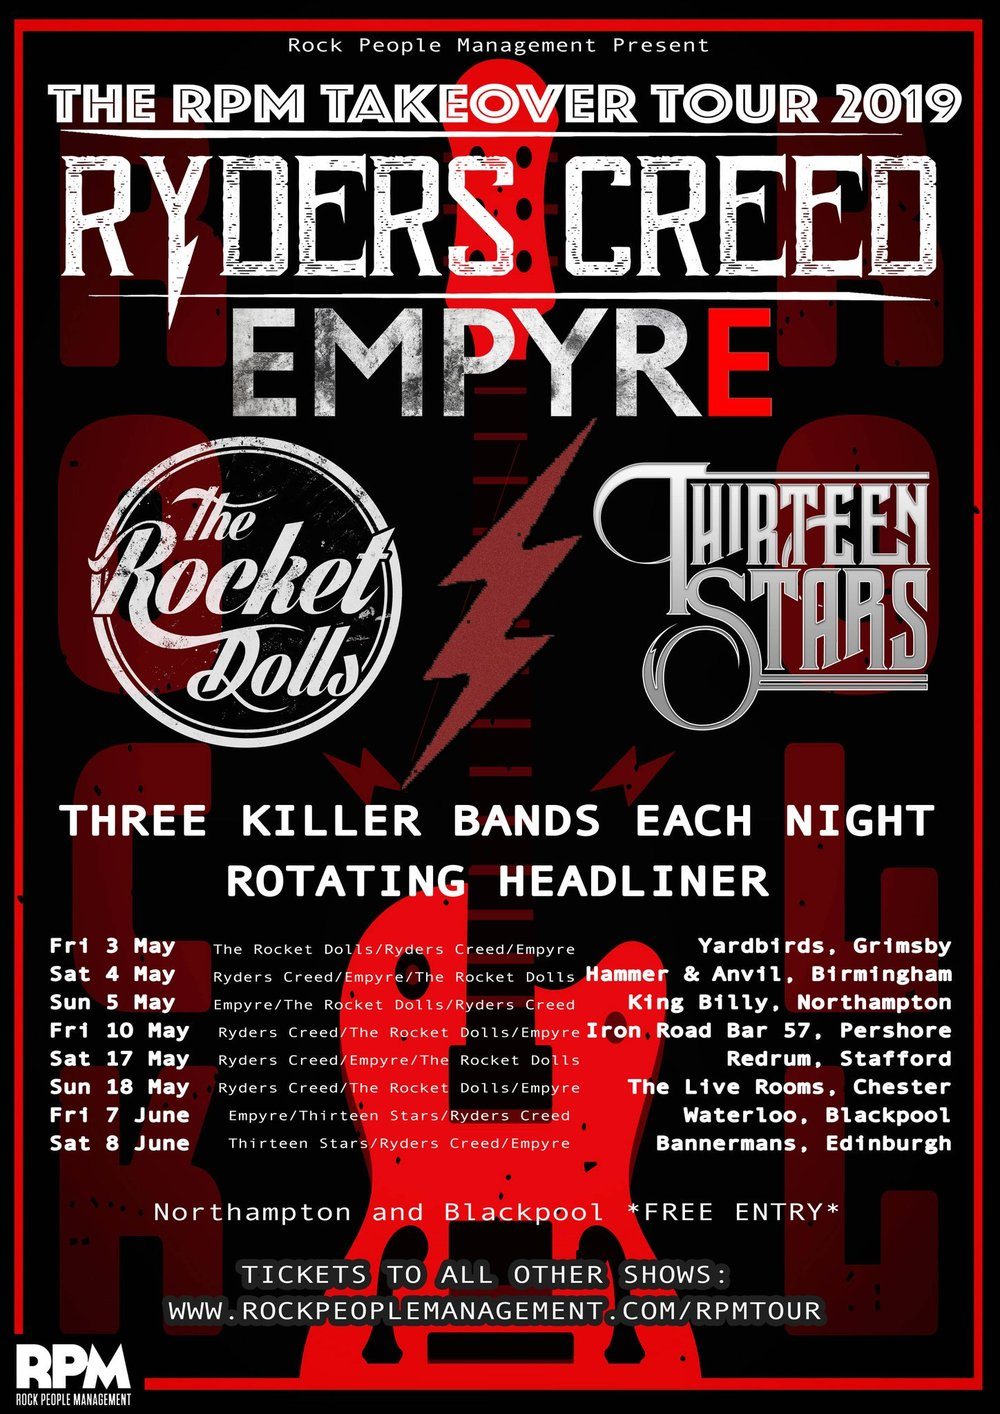 Ryders Creed Tour Dates 2019.jpg